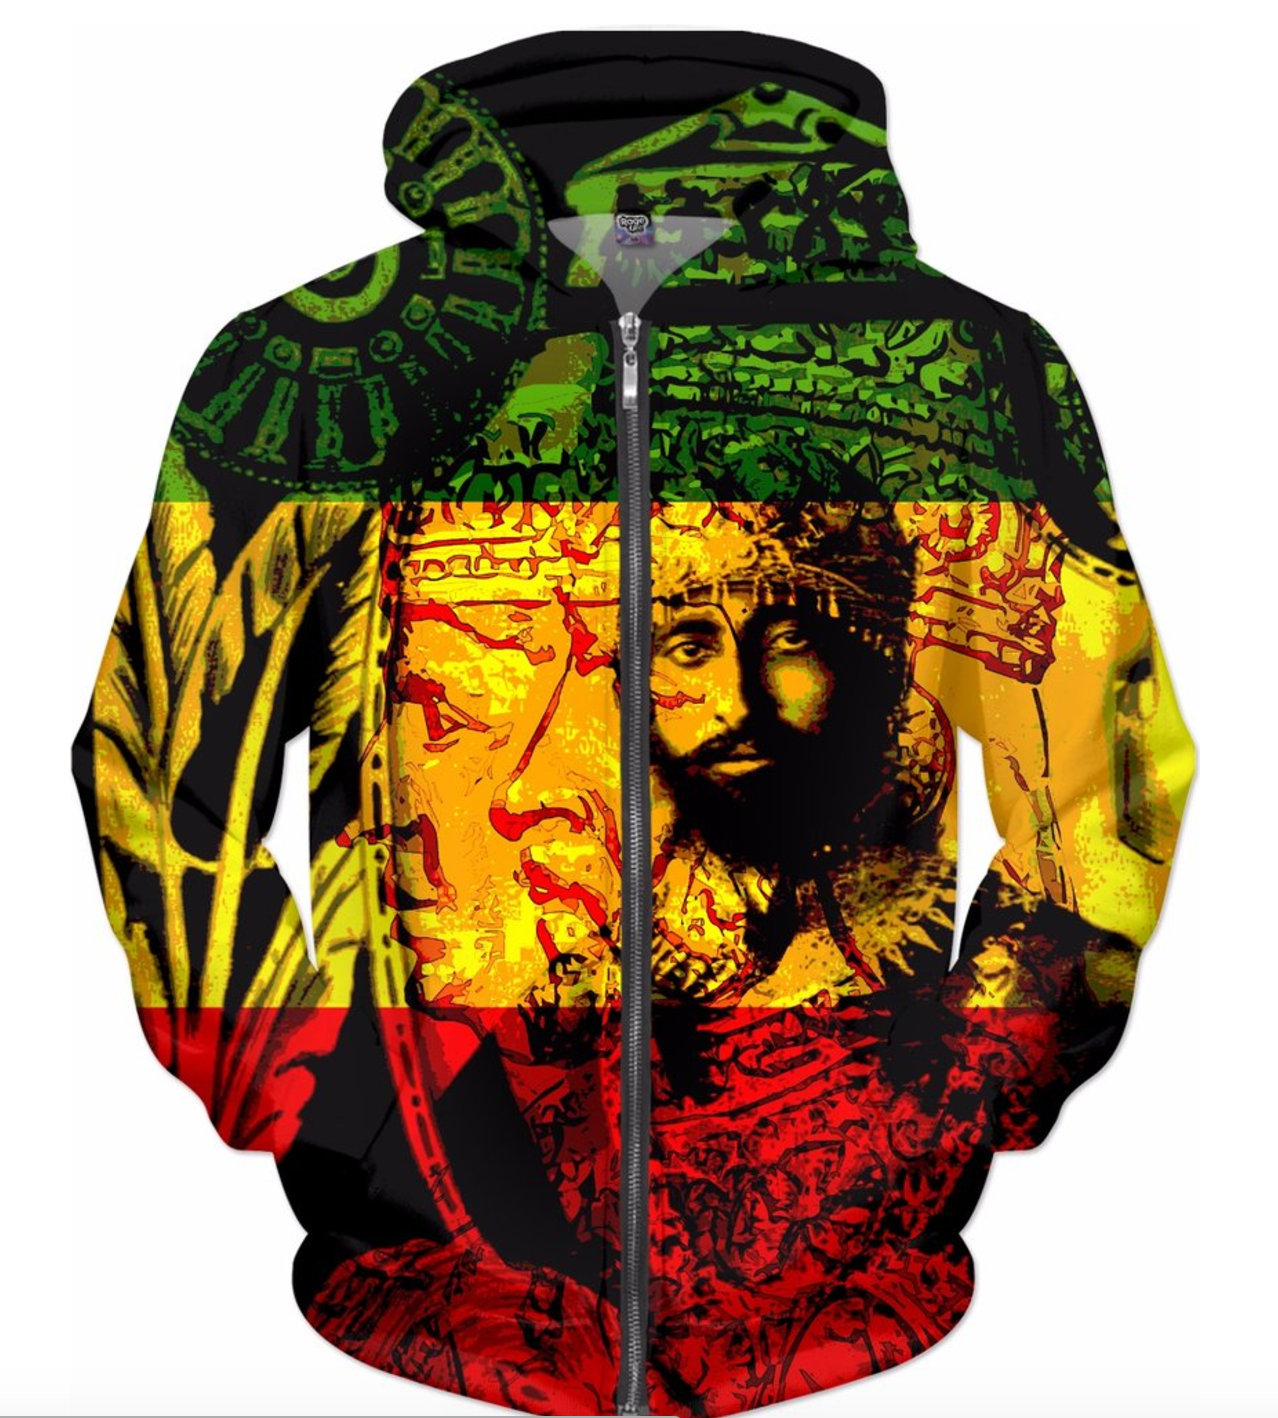 421c3165a46a8 Rasta Hoodie Haile Selassie Natural Mystic All Over Print